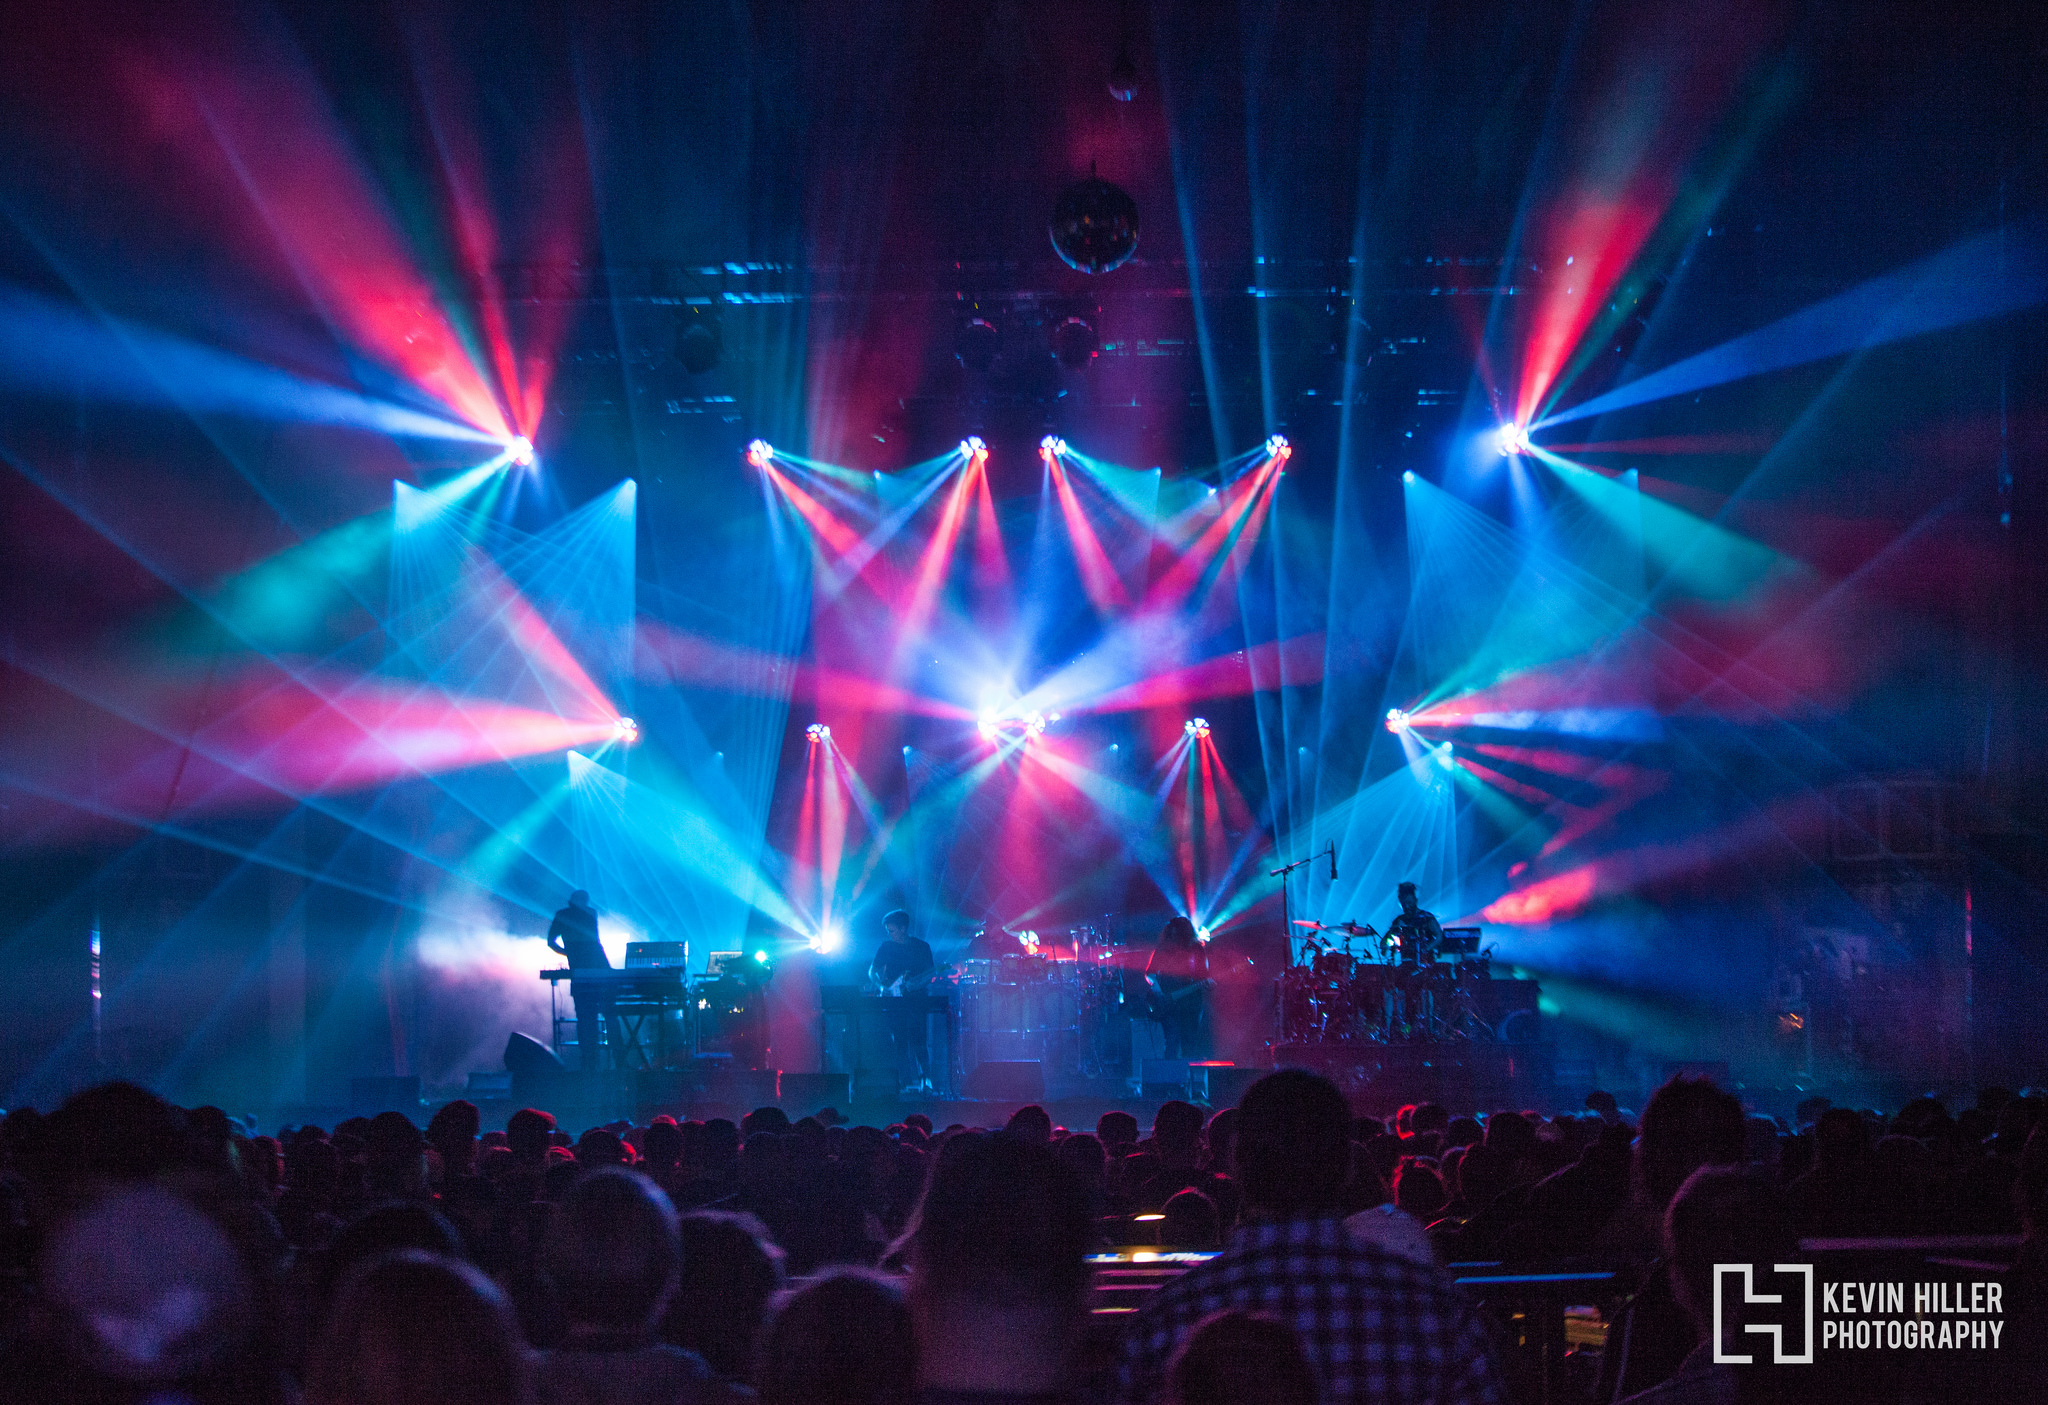 PHOTOS / VIDEO / SETLISTS | STS9 @ Aragon Feb 3&4, 2017